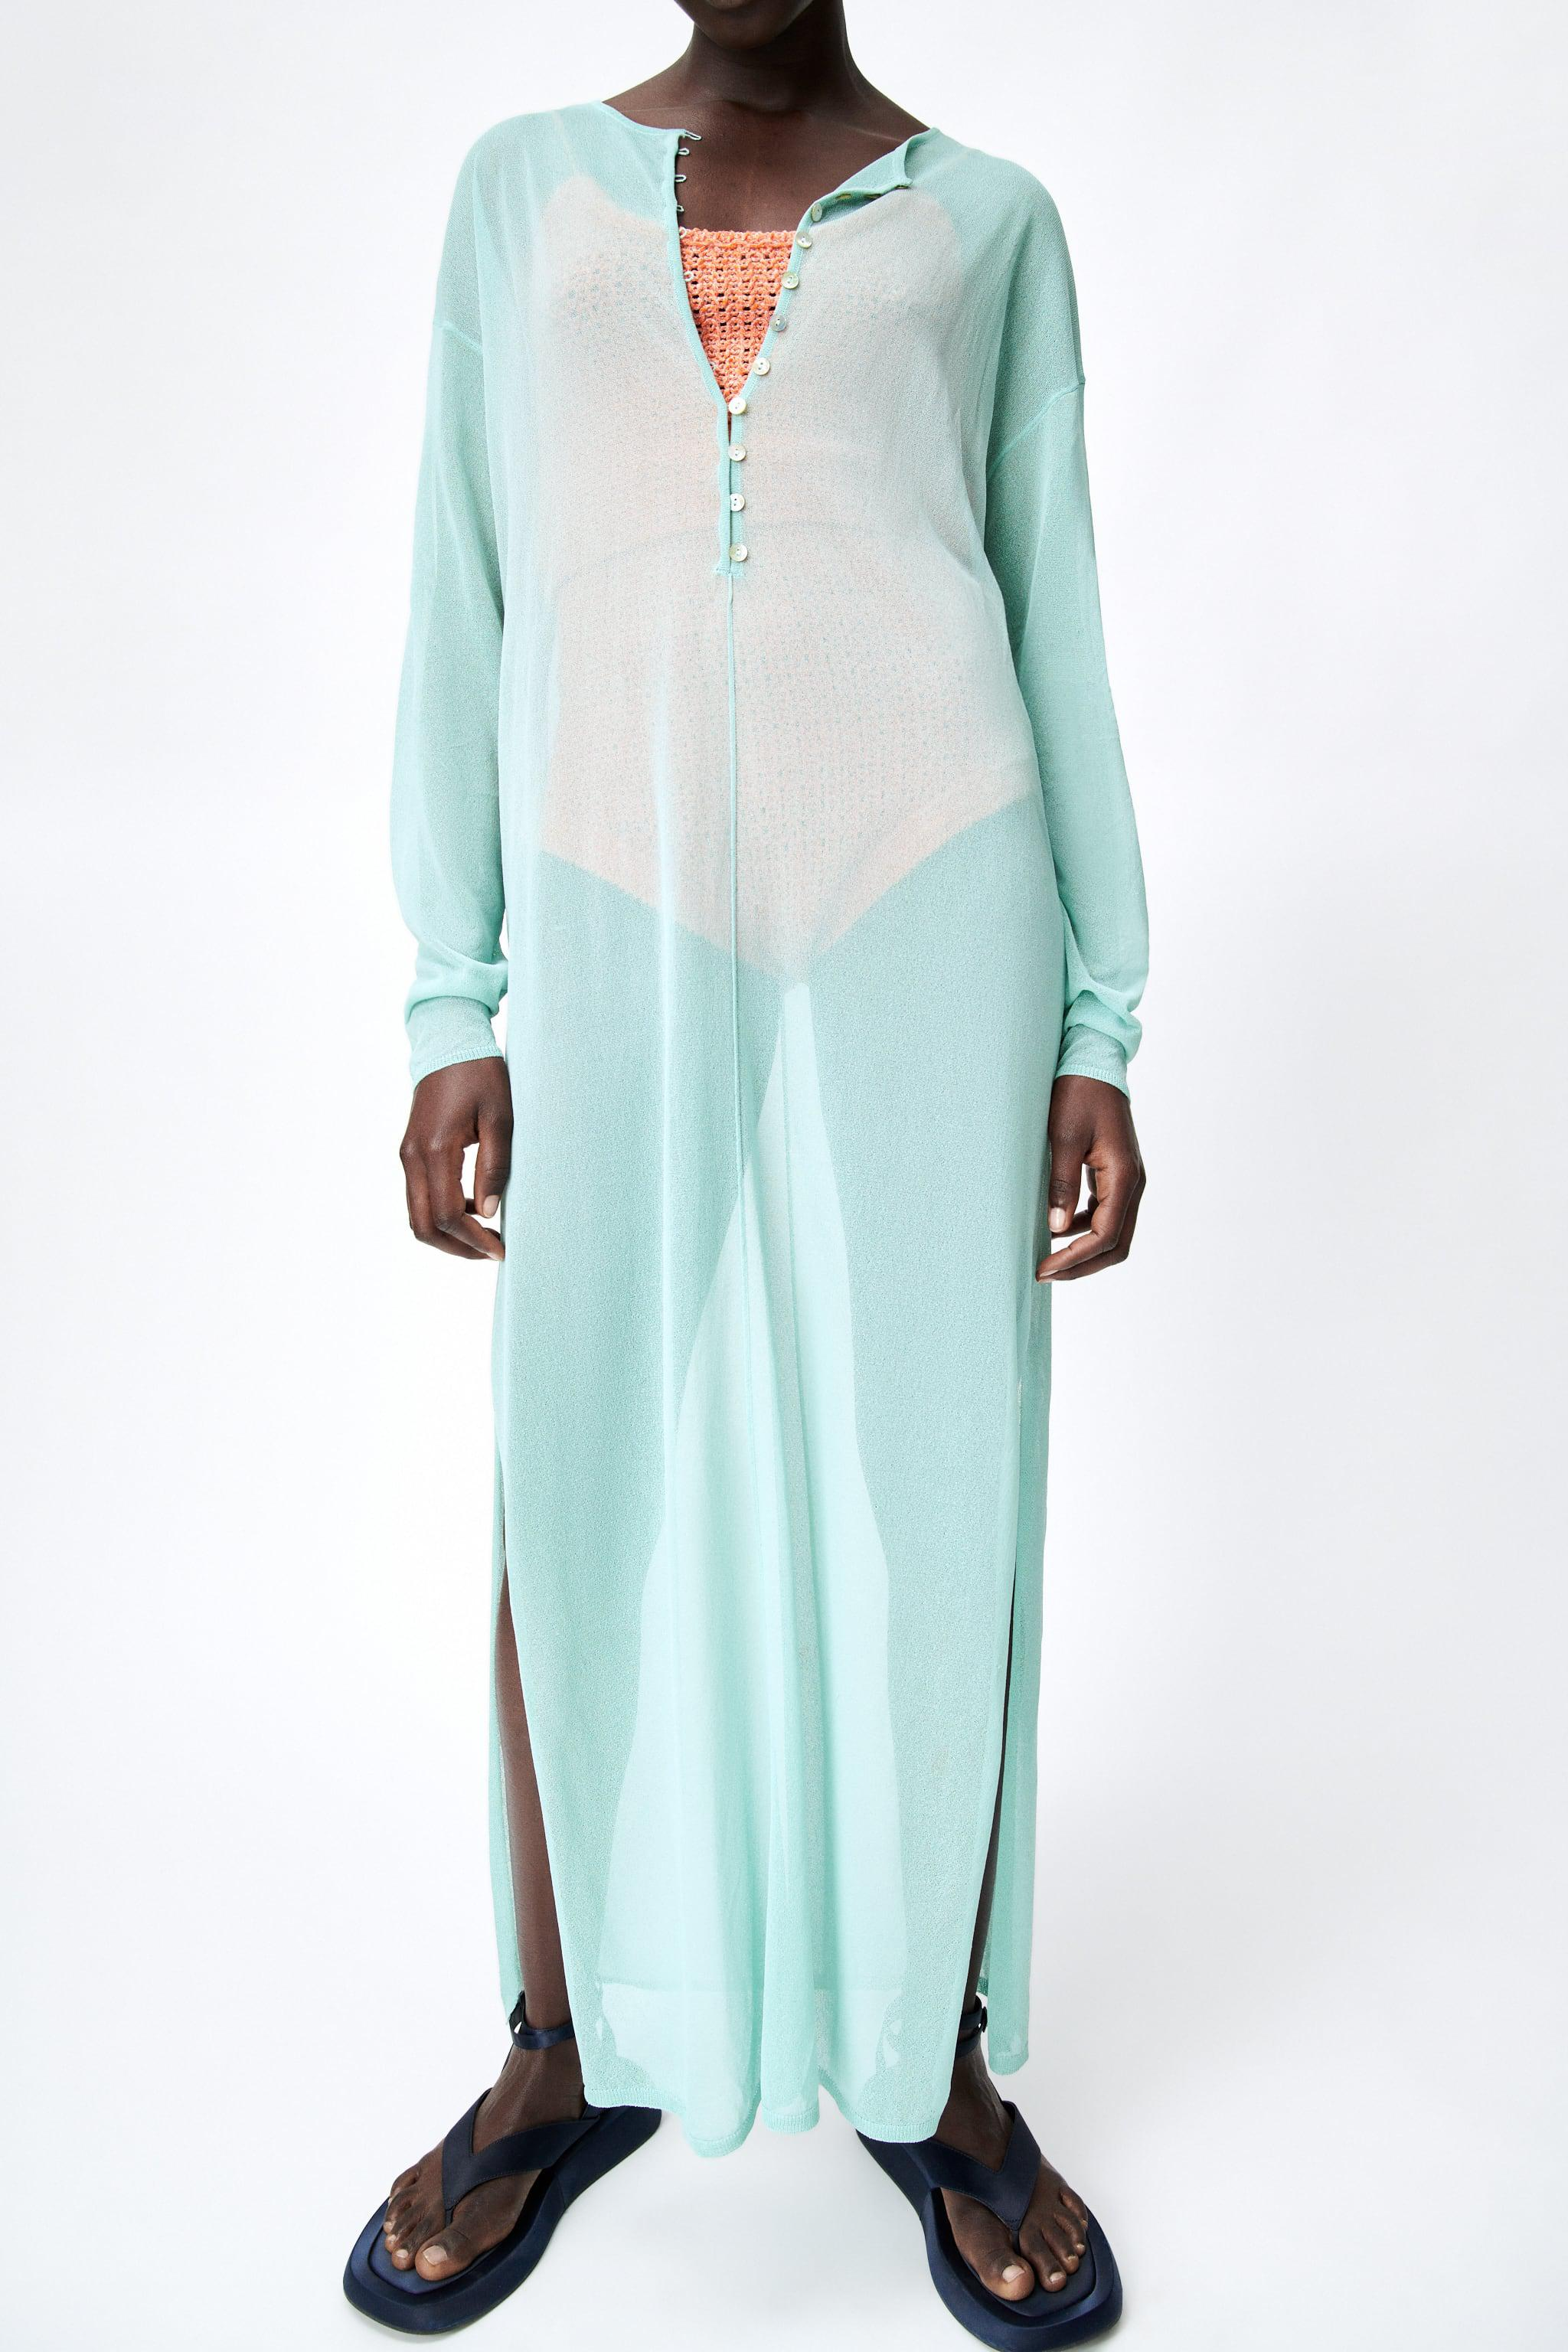 SEMI-SHEER KNIT TUNIC LIMITED EDITION 2